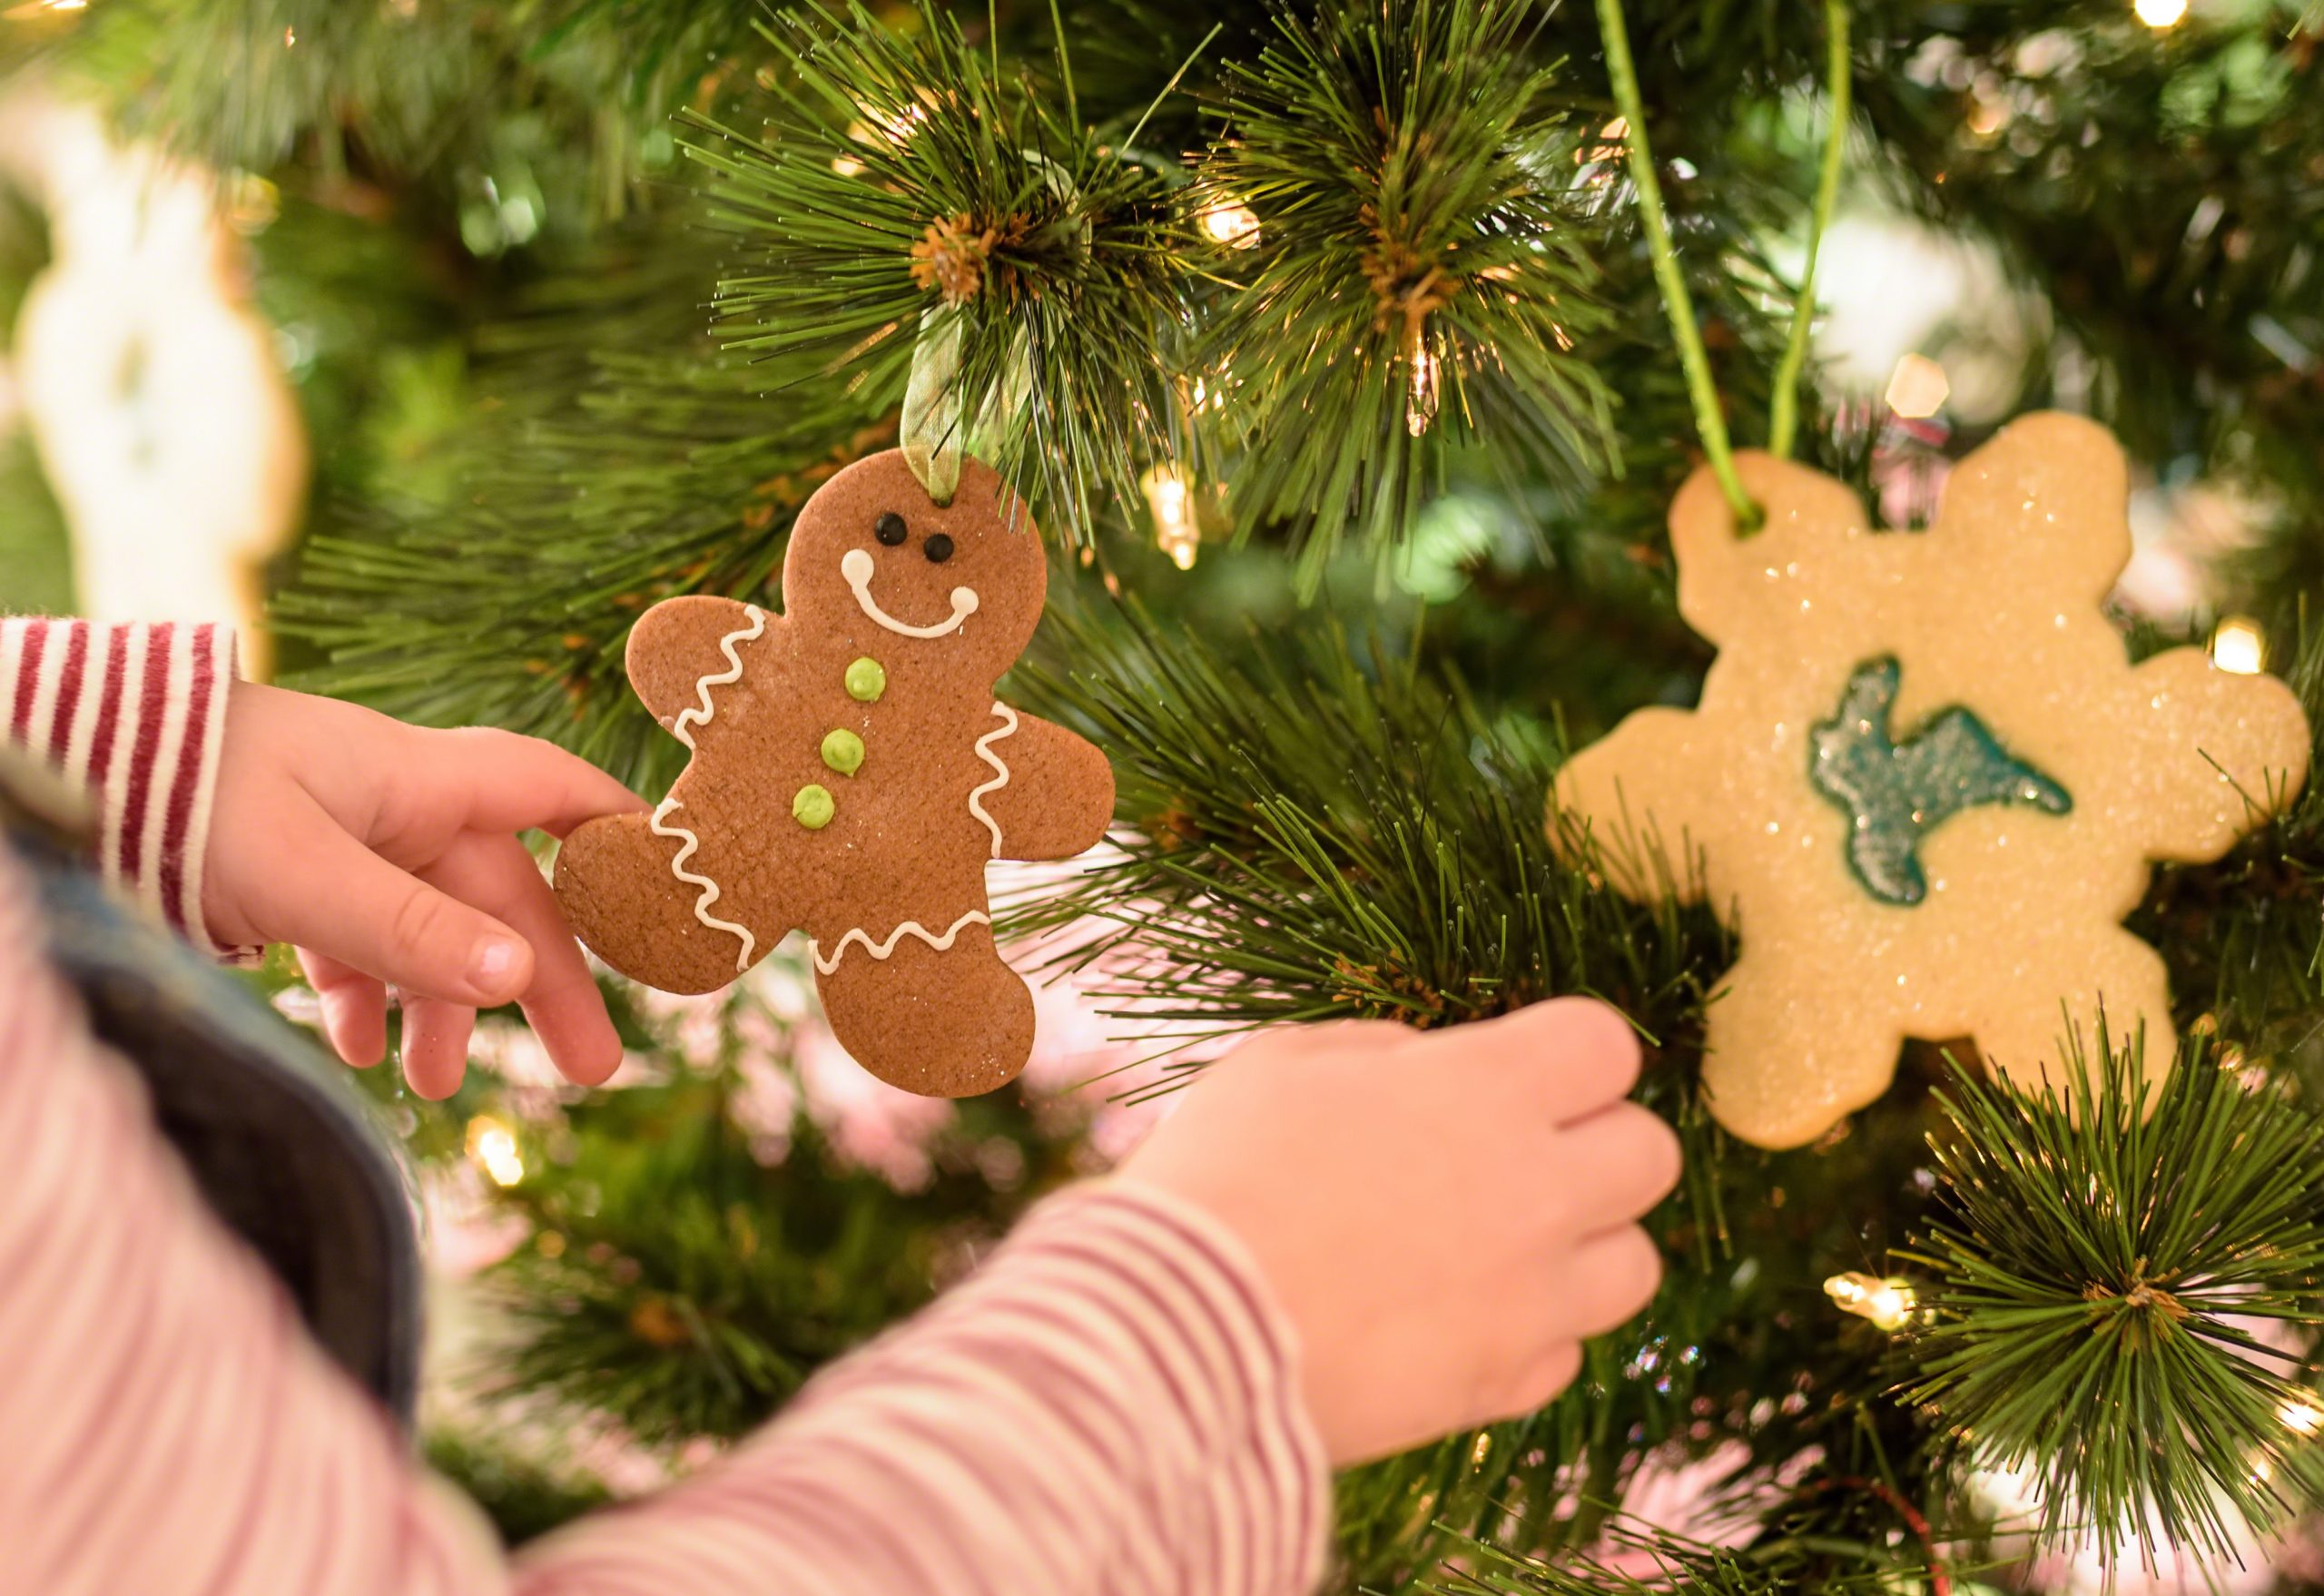 Young child hanging gingerbread man